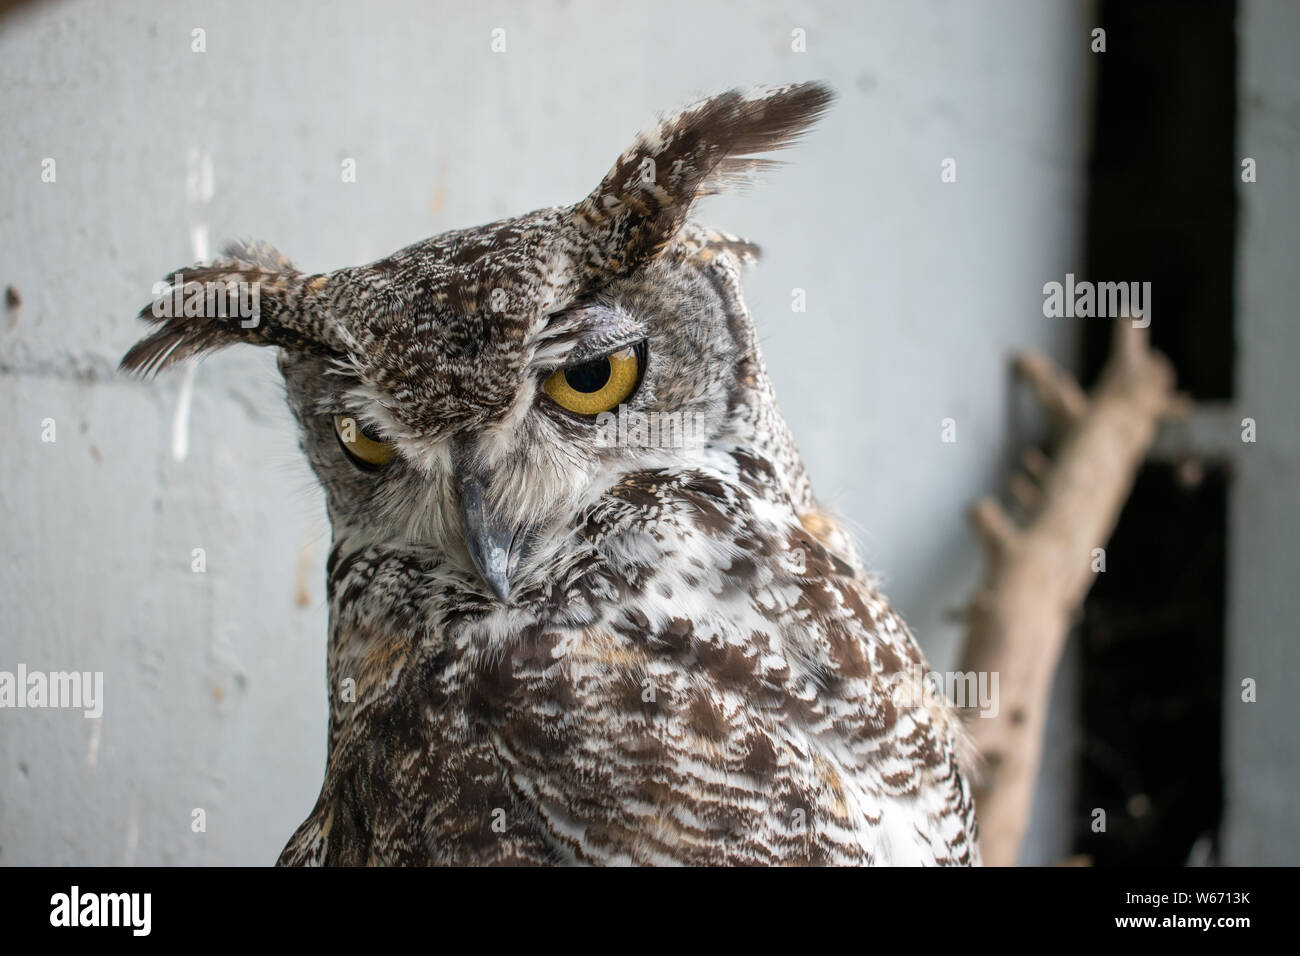 Great Horned Owl Perching On Tree Branch Water Globe Nocturnal Owl Snow Globe